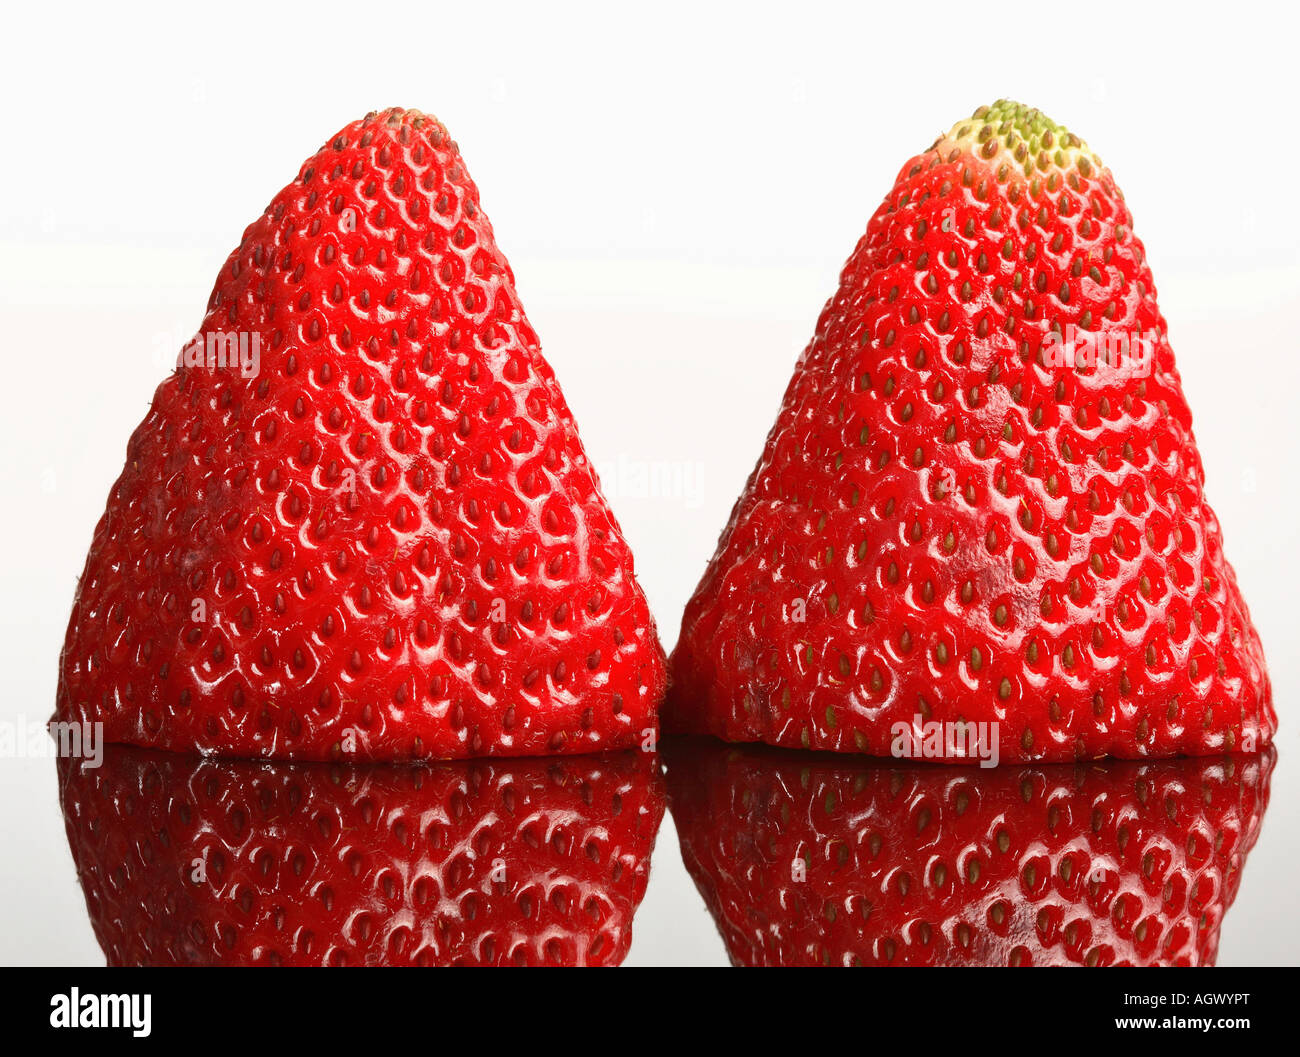 Painet jn5698 strawberries reflected glass 20070430 strawberry fruit food desert reflection color digital horizontal - Stock Image